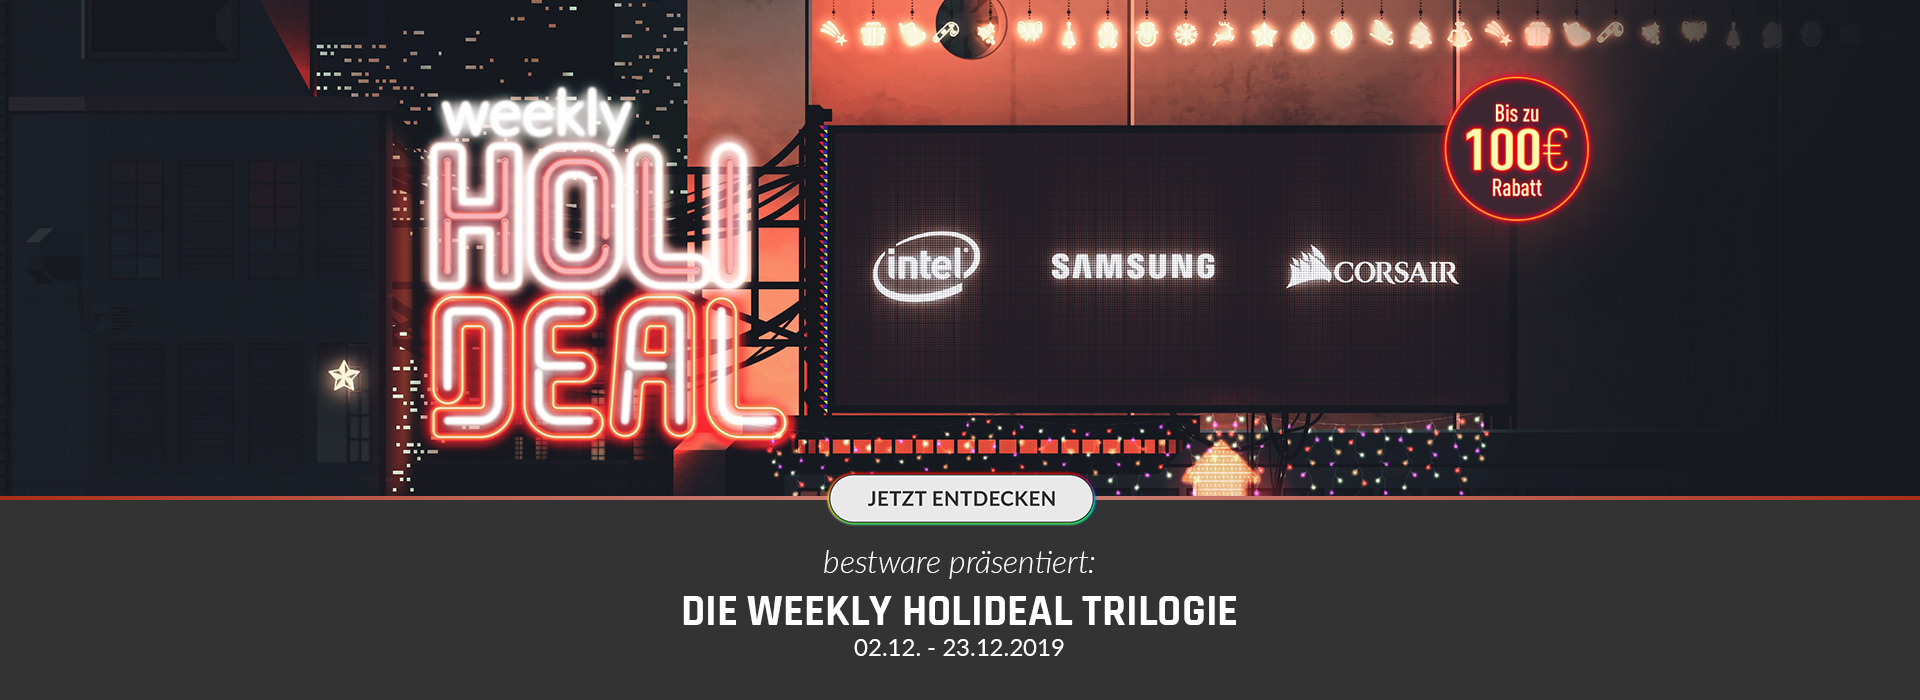 Weekly HoliDeal Trilogie